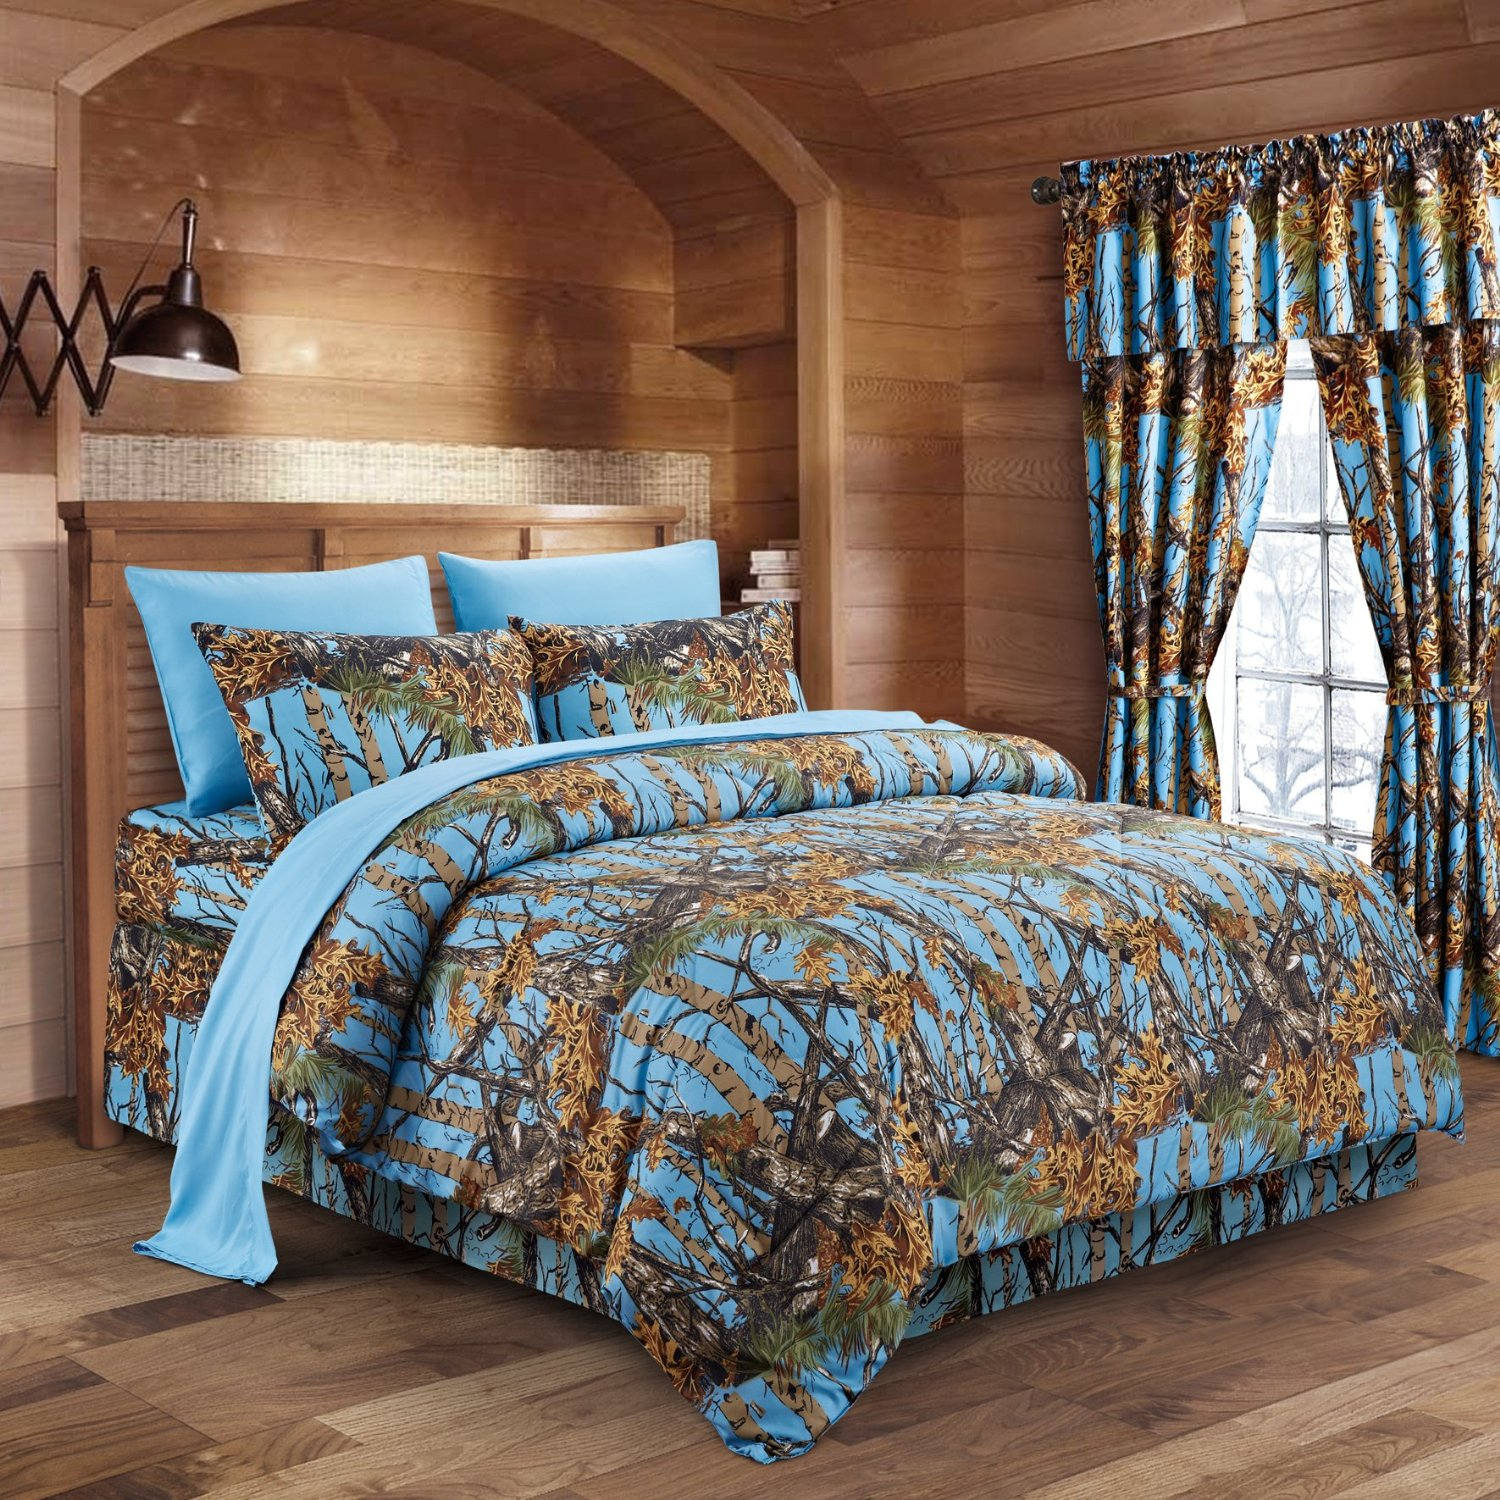 The Woods Powder Blue Camouflage Queen 8pc Premium Luxury Comforter, Sheet, Pillowcases, and Bed Skirt Set by Regal Comfort Camo Bedding Set For Hunters Cabin or Rustic Lodge Teens Boys and Girls